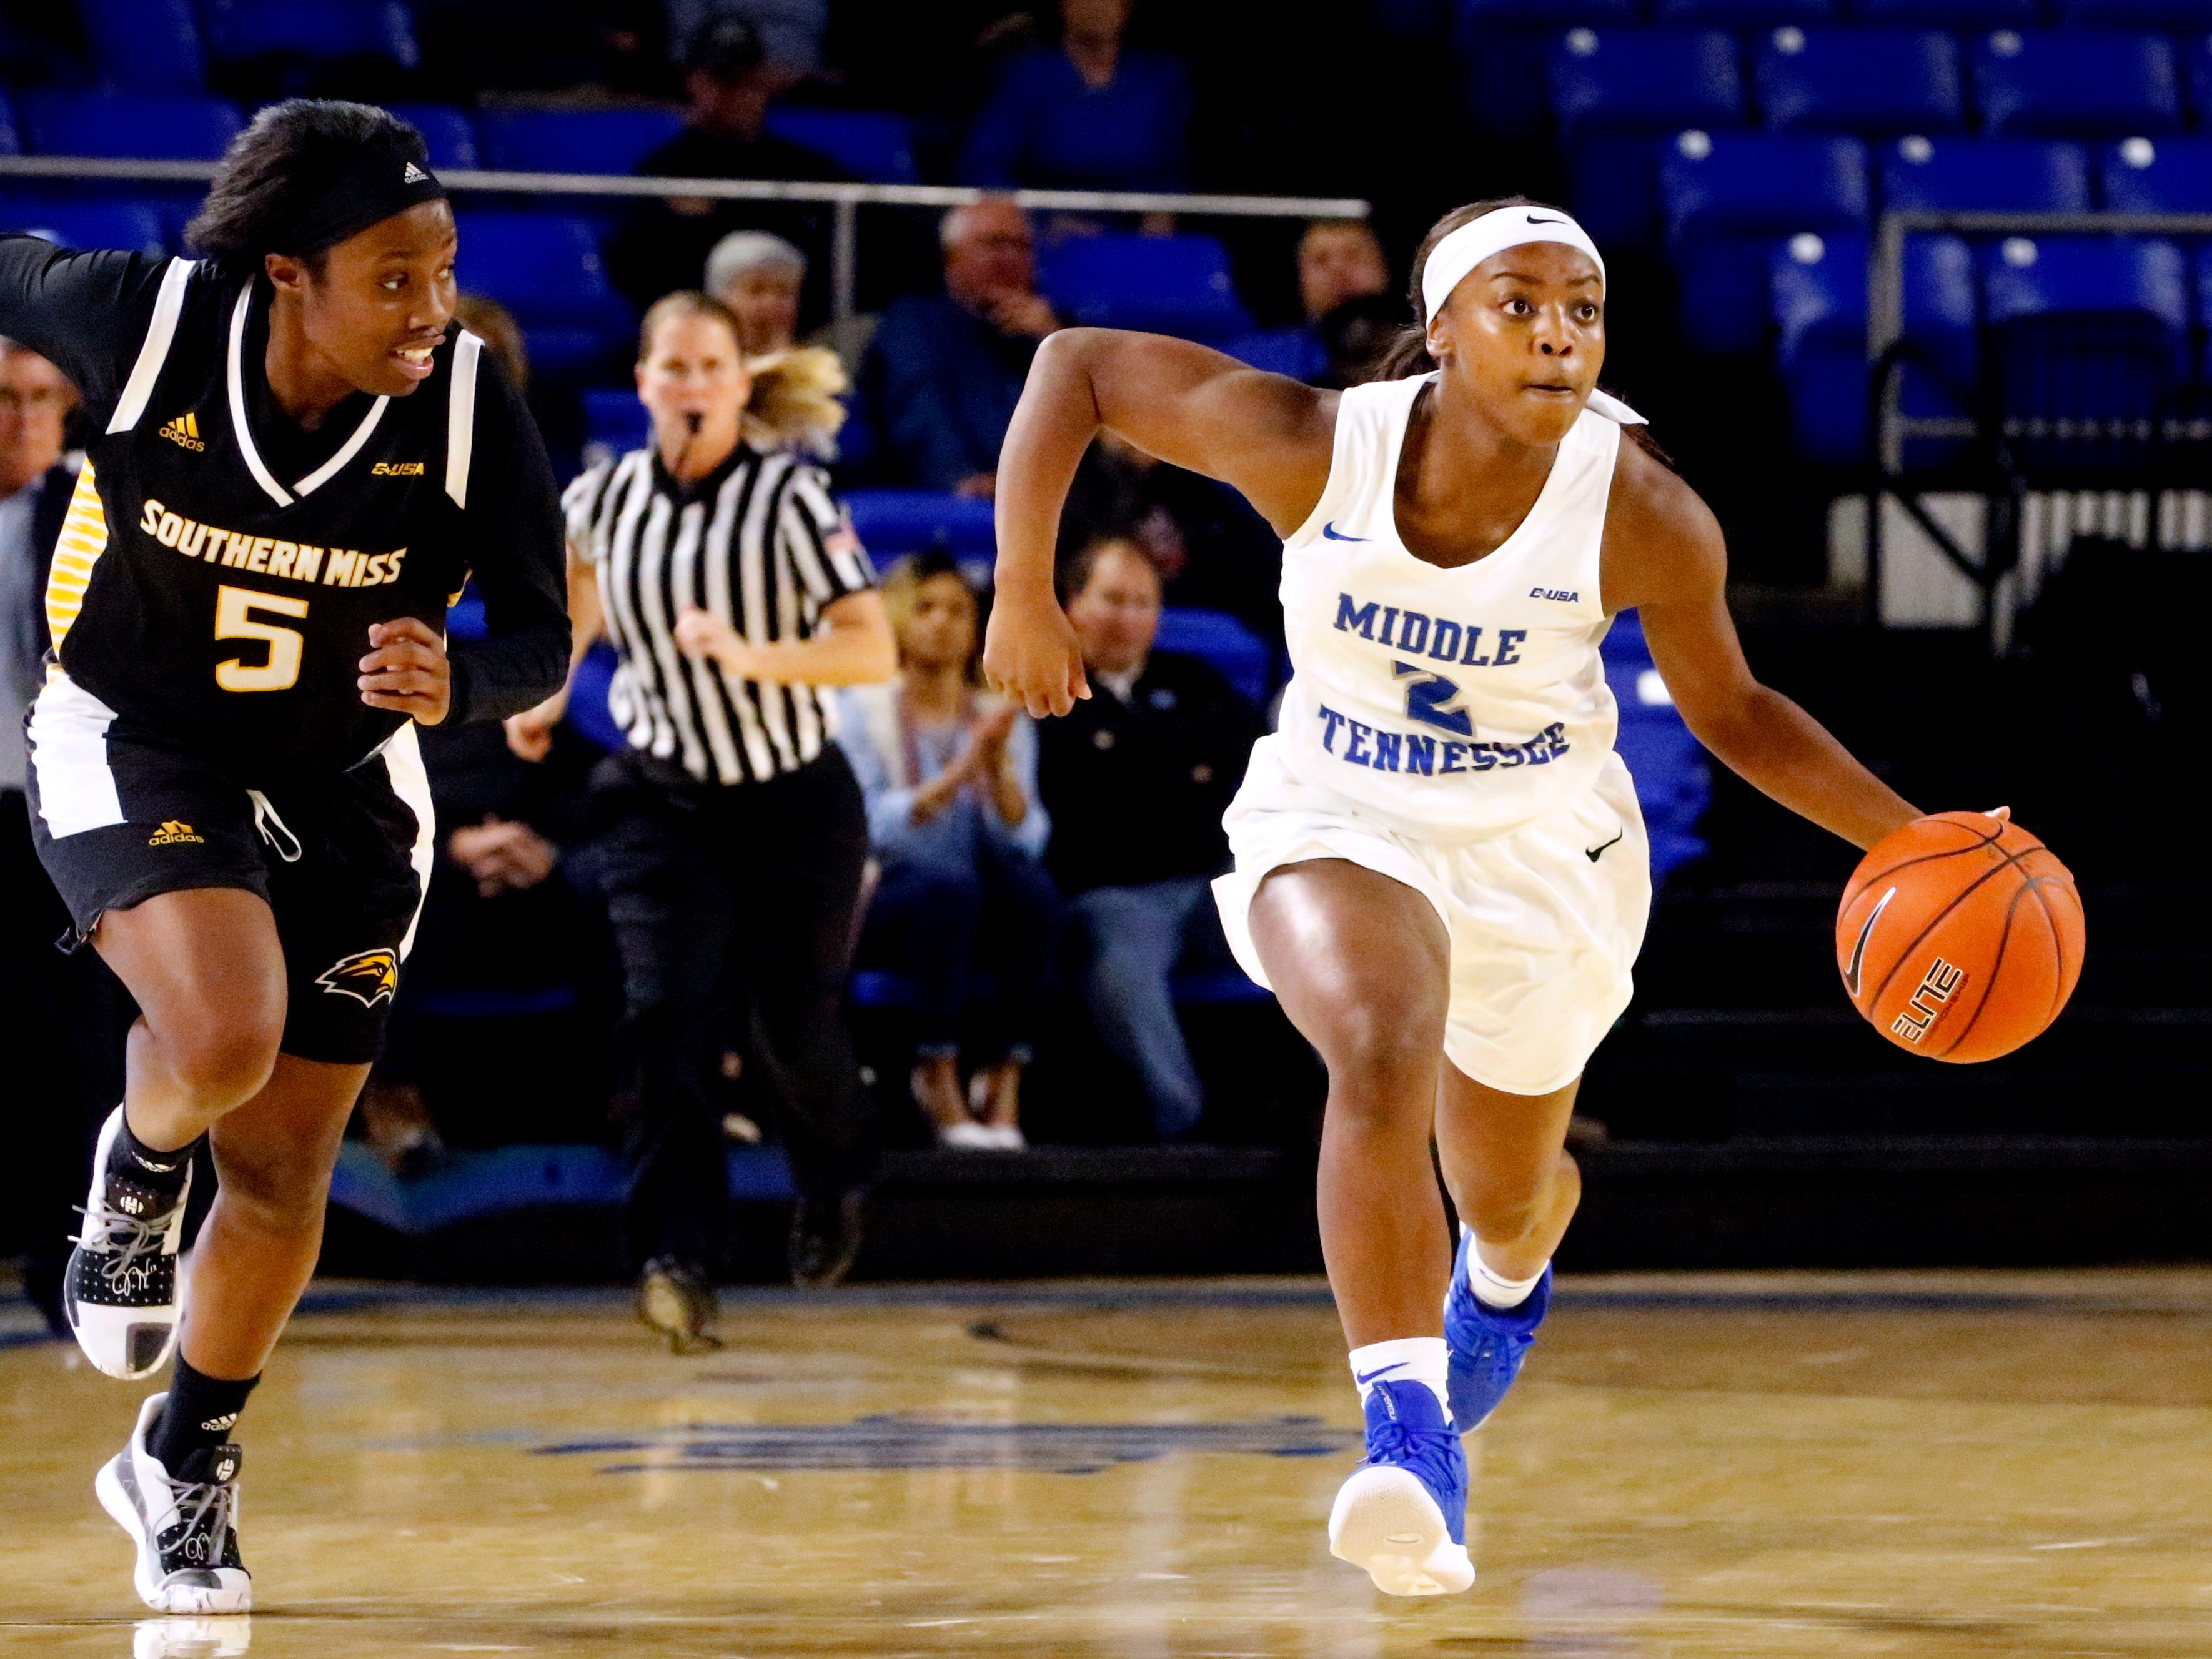 MTSU's guard Taylor Sutton (2) brings the ball down the court s Southern Miss' Shonte Hailes (5) follows beside her, on Thursday Jan. 10, 2019.